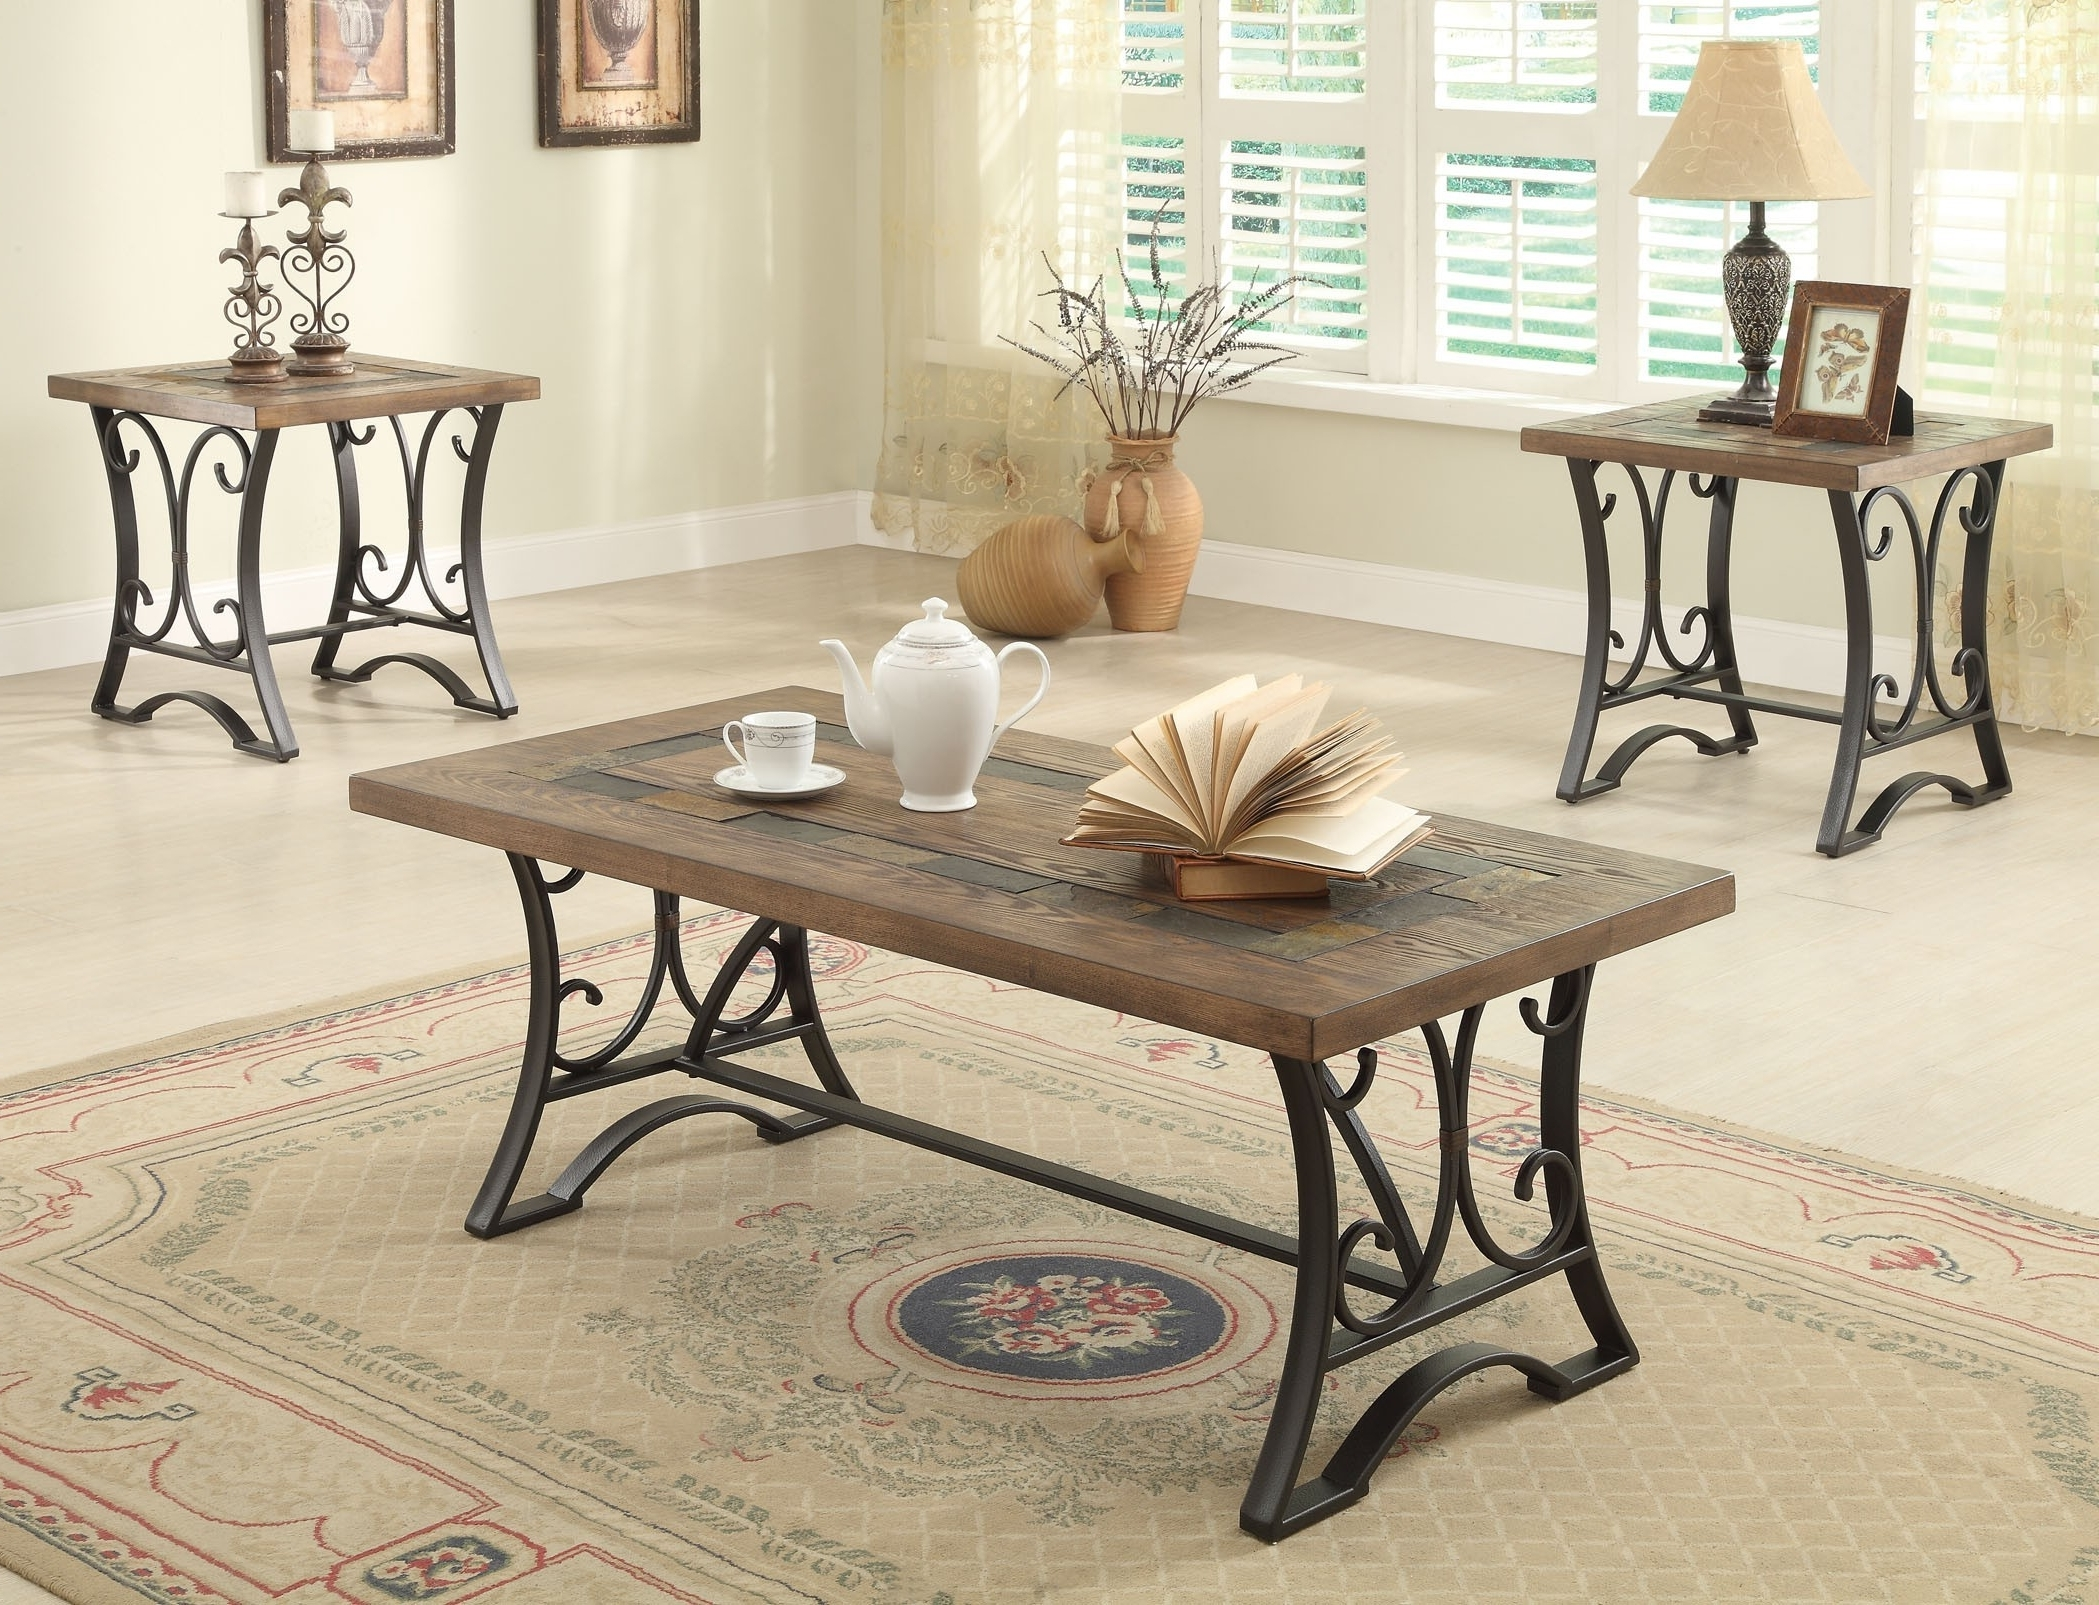 Fashionable Potomac Adjustable Coffee Tables Intended For 11 Lovely Metal Coffee Table Sets (View 17 of 20)